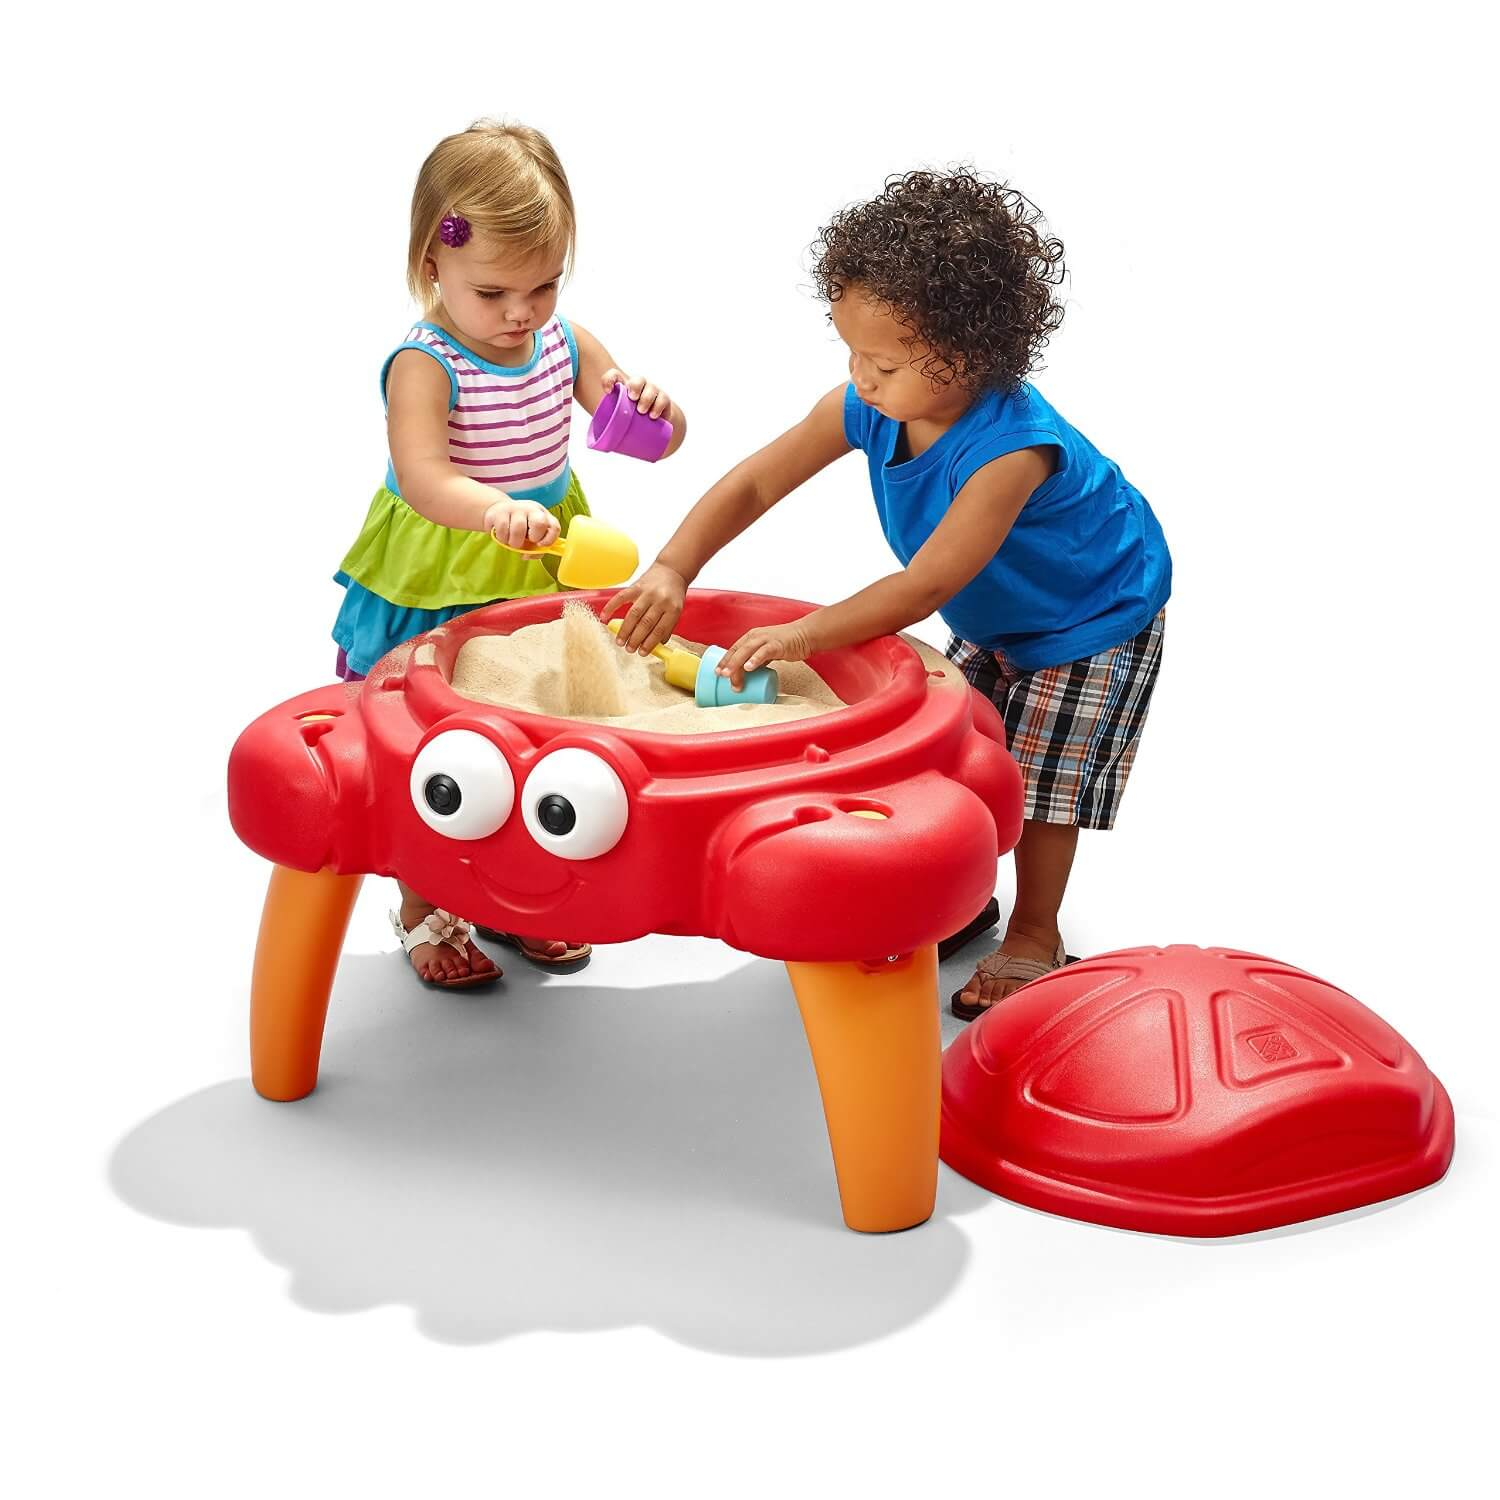 Best Outdoor Toys for Toddlers and Kids FamilyEducation